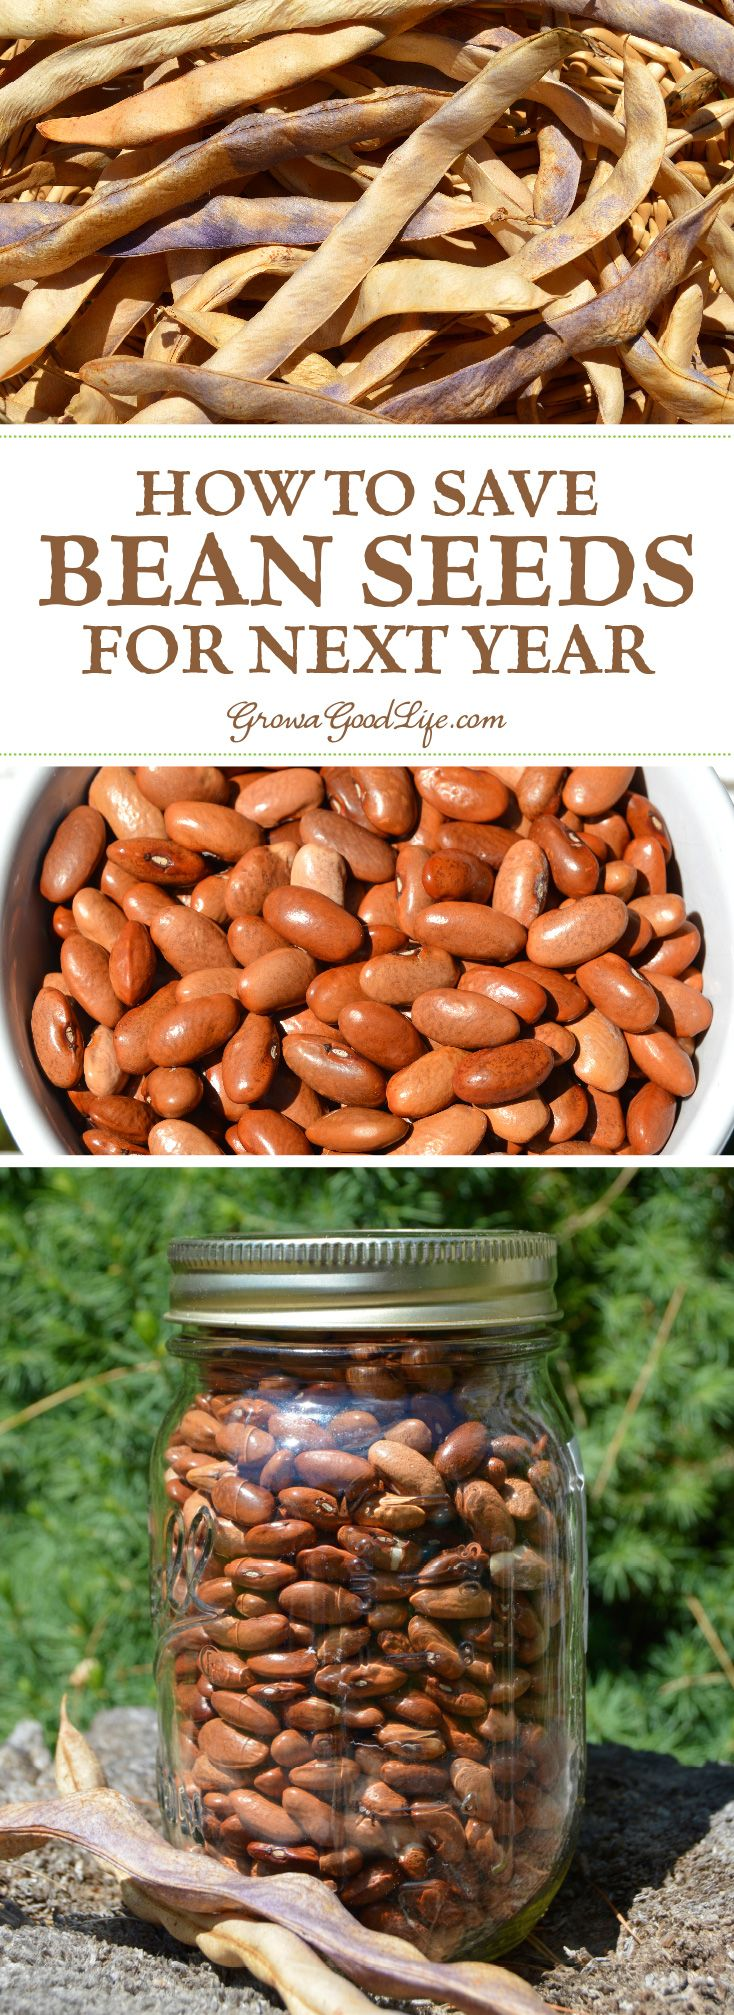 Saving seeds from year to year is a good way to spare some money in the gardening budget, become more self-sufficient, and adapt a crop to your unique growing conditions. One of the easiest vegetables to begin with are open-pollinated, heirloom bean seeds.